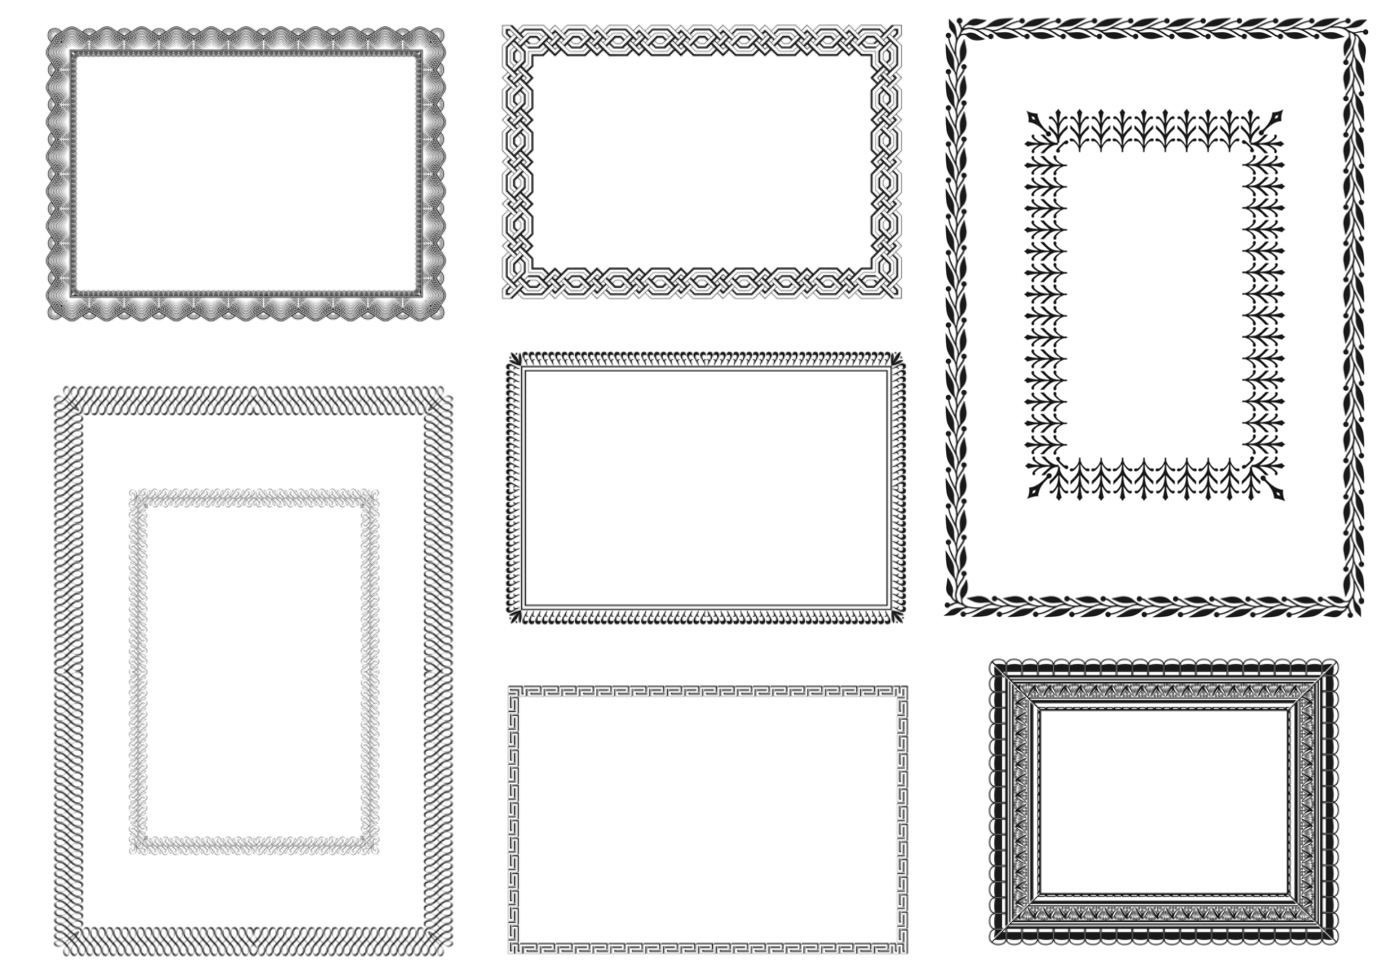 Certificate vector frames pack download free vector art stock certificate vector frames pack download free vector art stock graphics images 1betcityfo Gallery